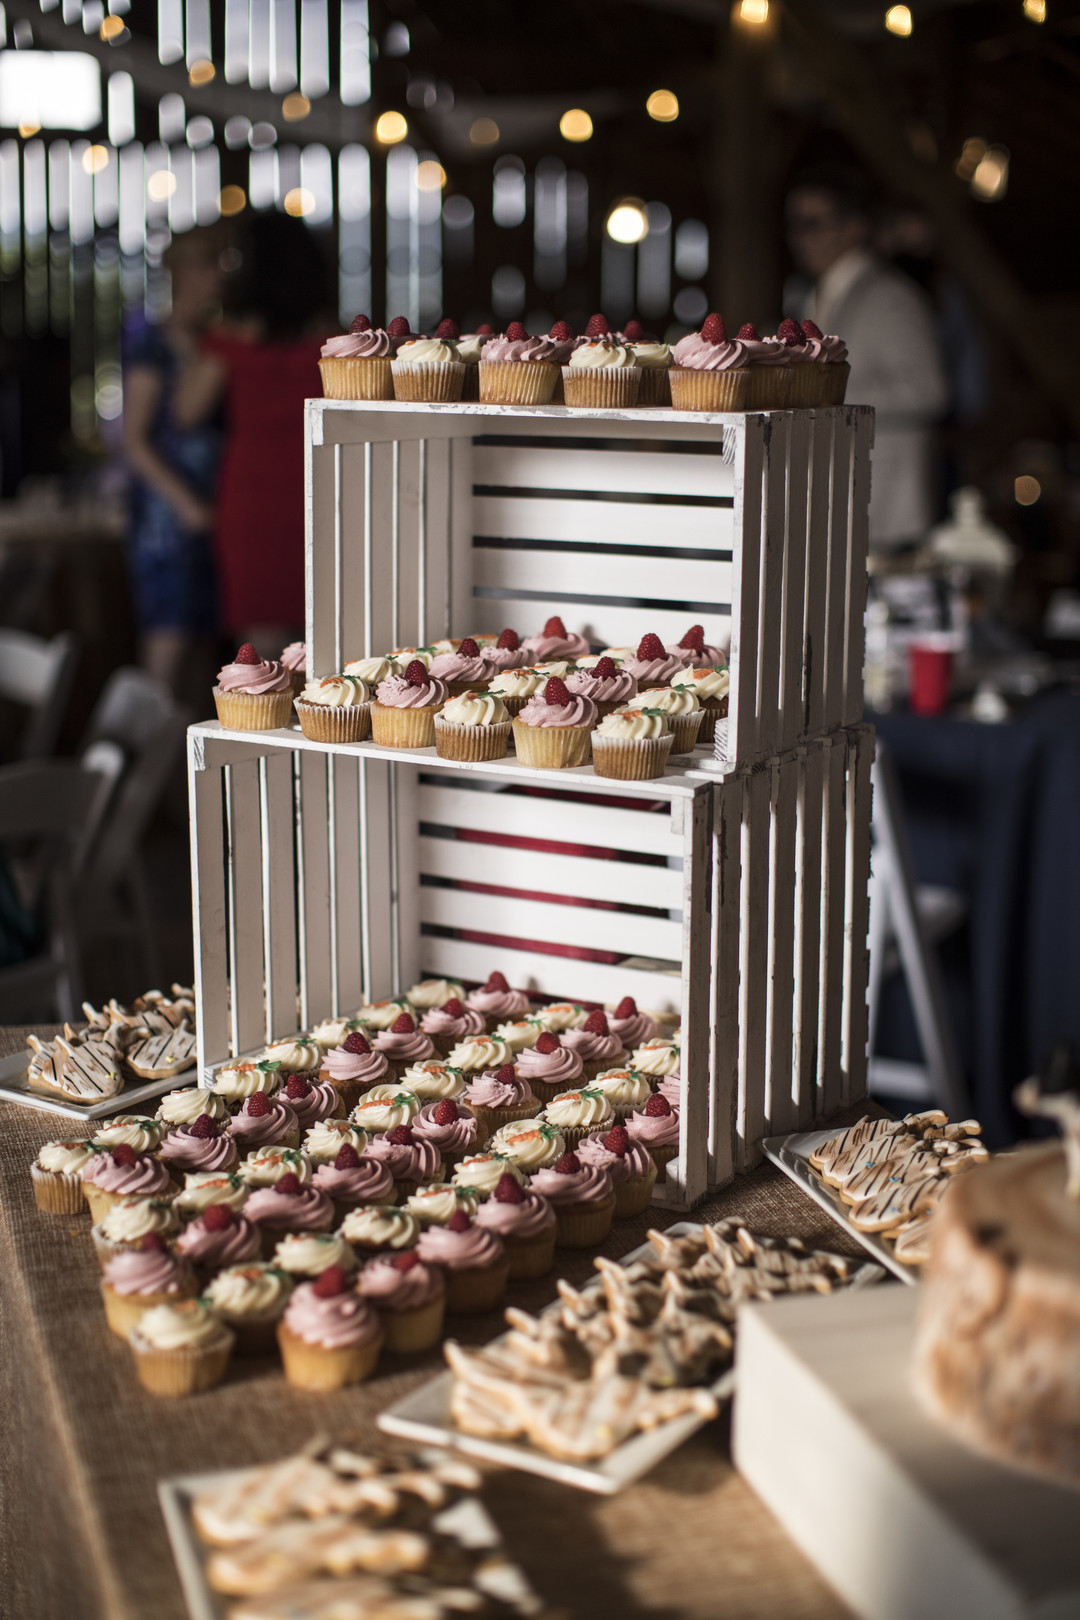 Alternative wedding desserts include cupcakes as a bitesized cake to eat on the dance floor.